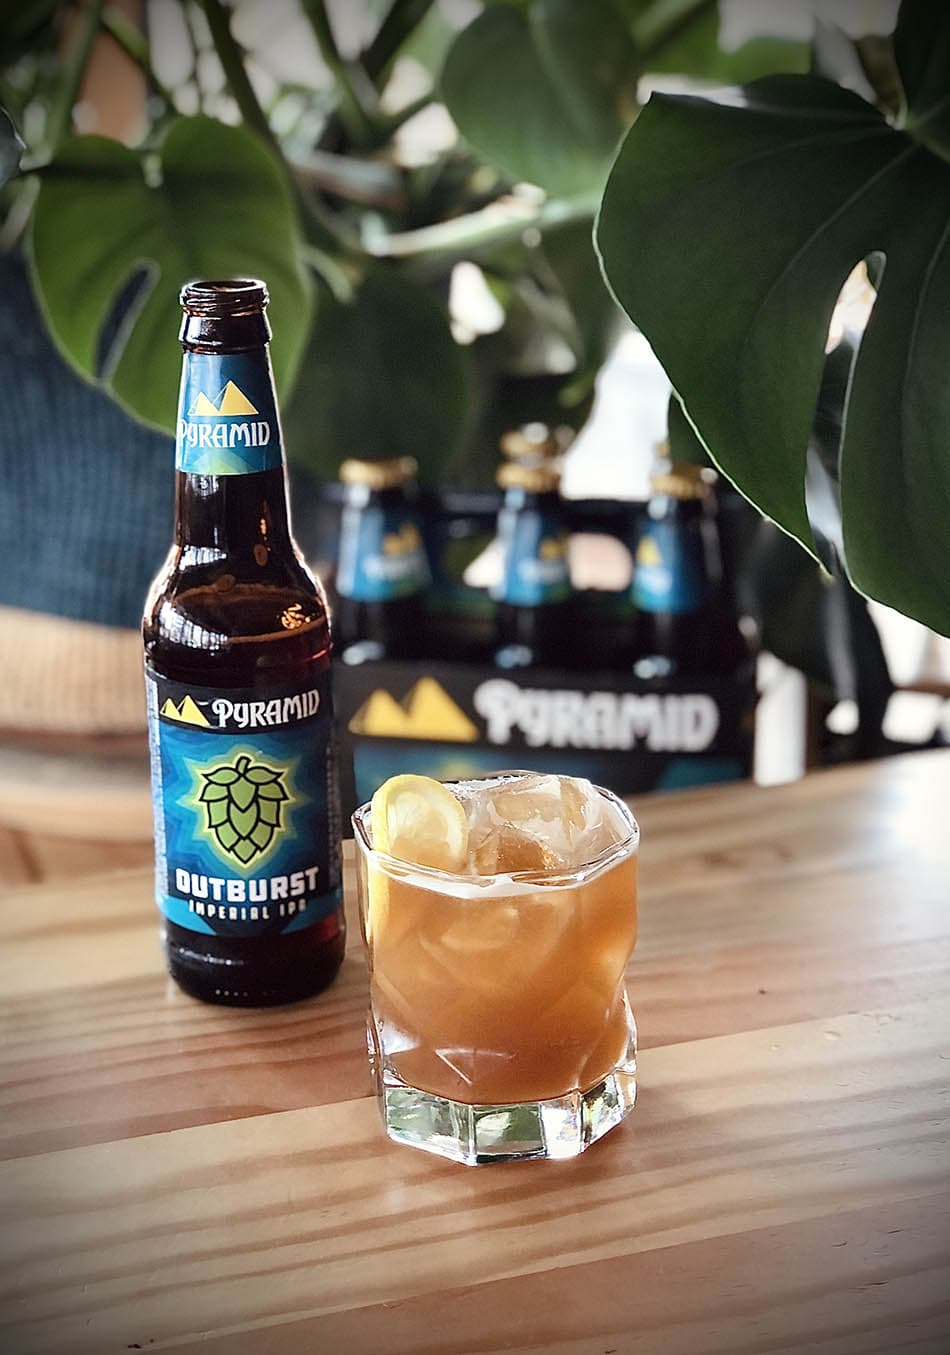 A tumbler full to the brim of the Outburst IPA beer cocktail called the Pacific Summer. The beer, peach brandy, and tea cocktail is positioned next to a bottle of Outburst IPA, a 6 pack, and some greenery.